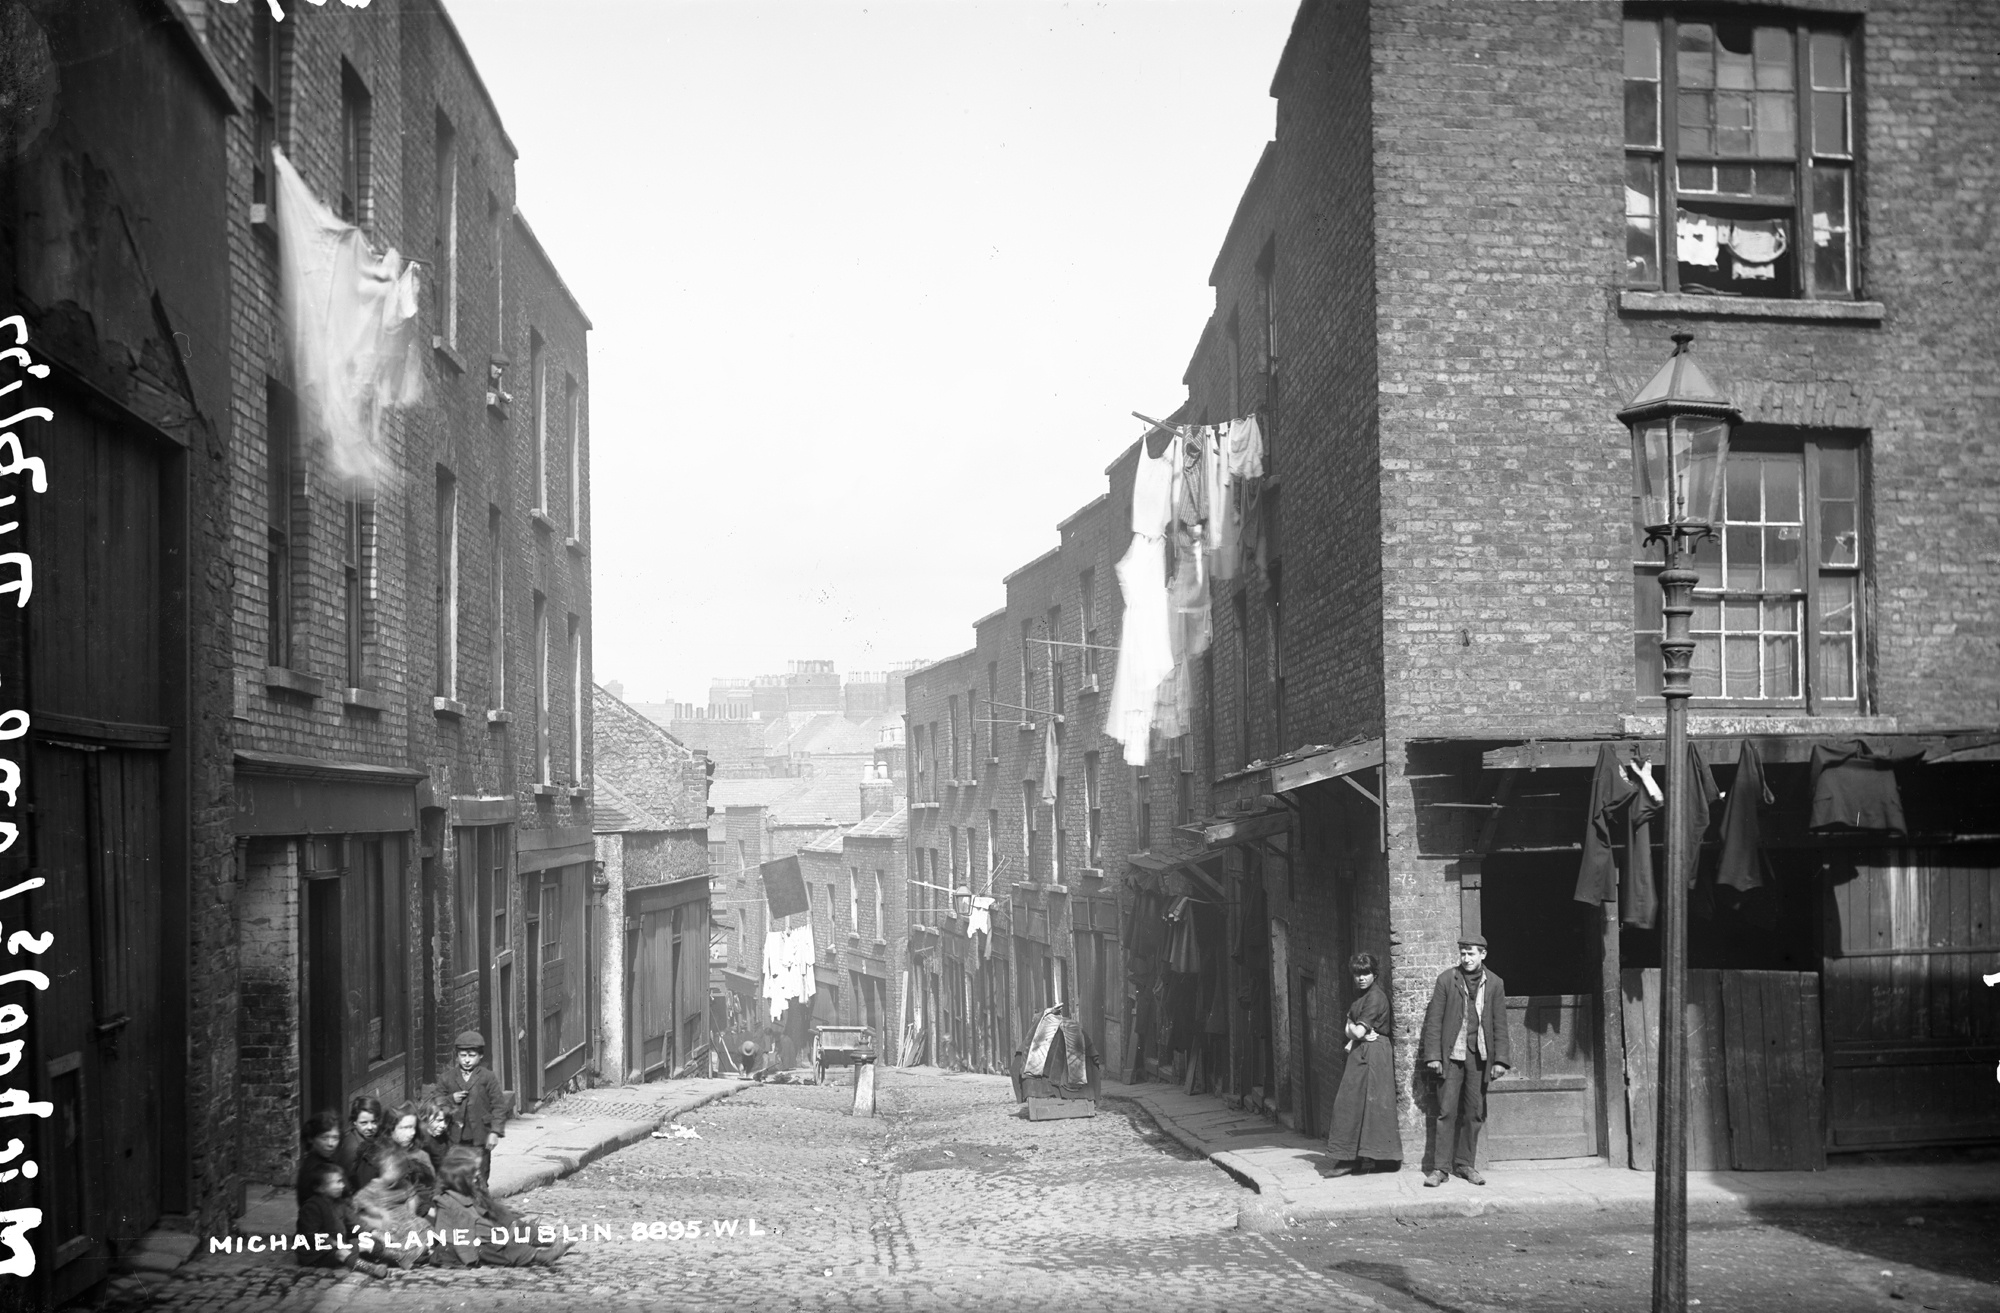 Michael's Lane, Dublin City